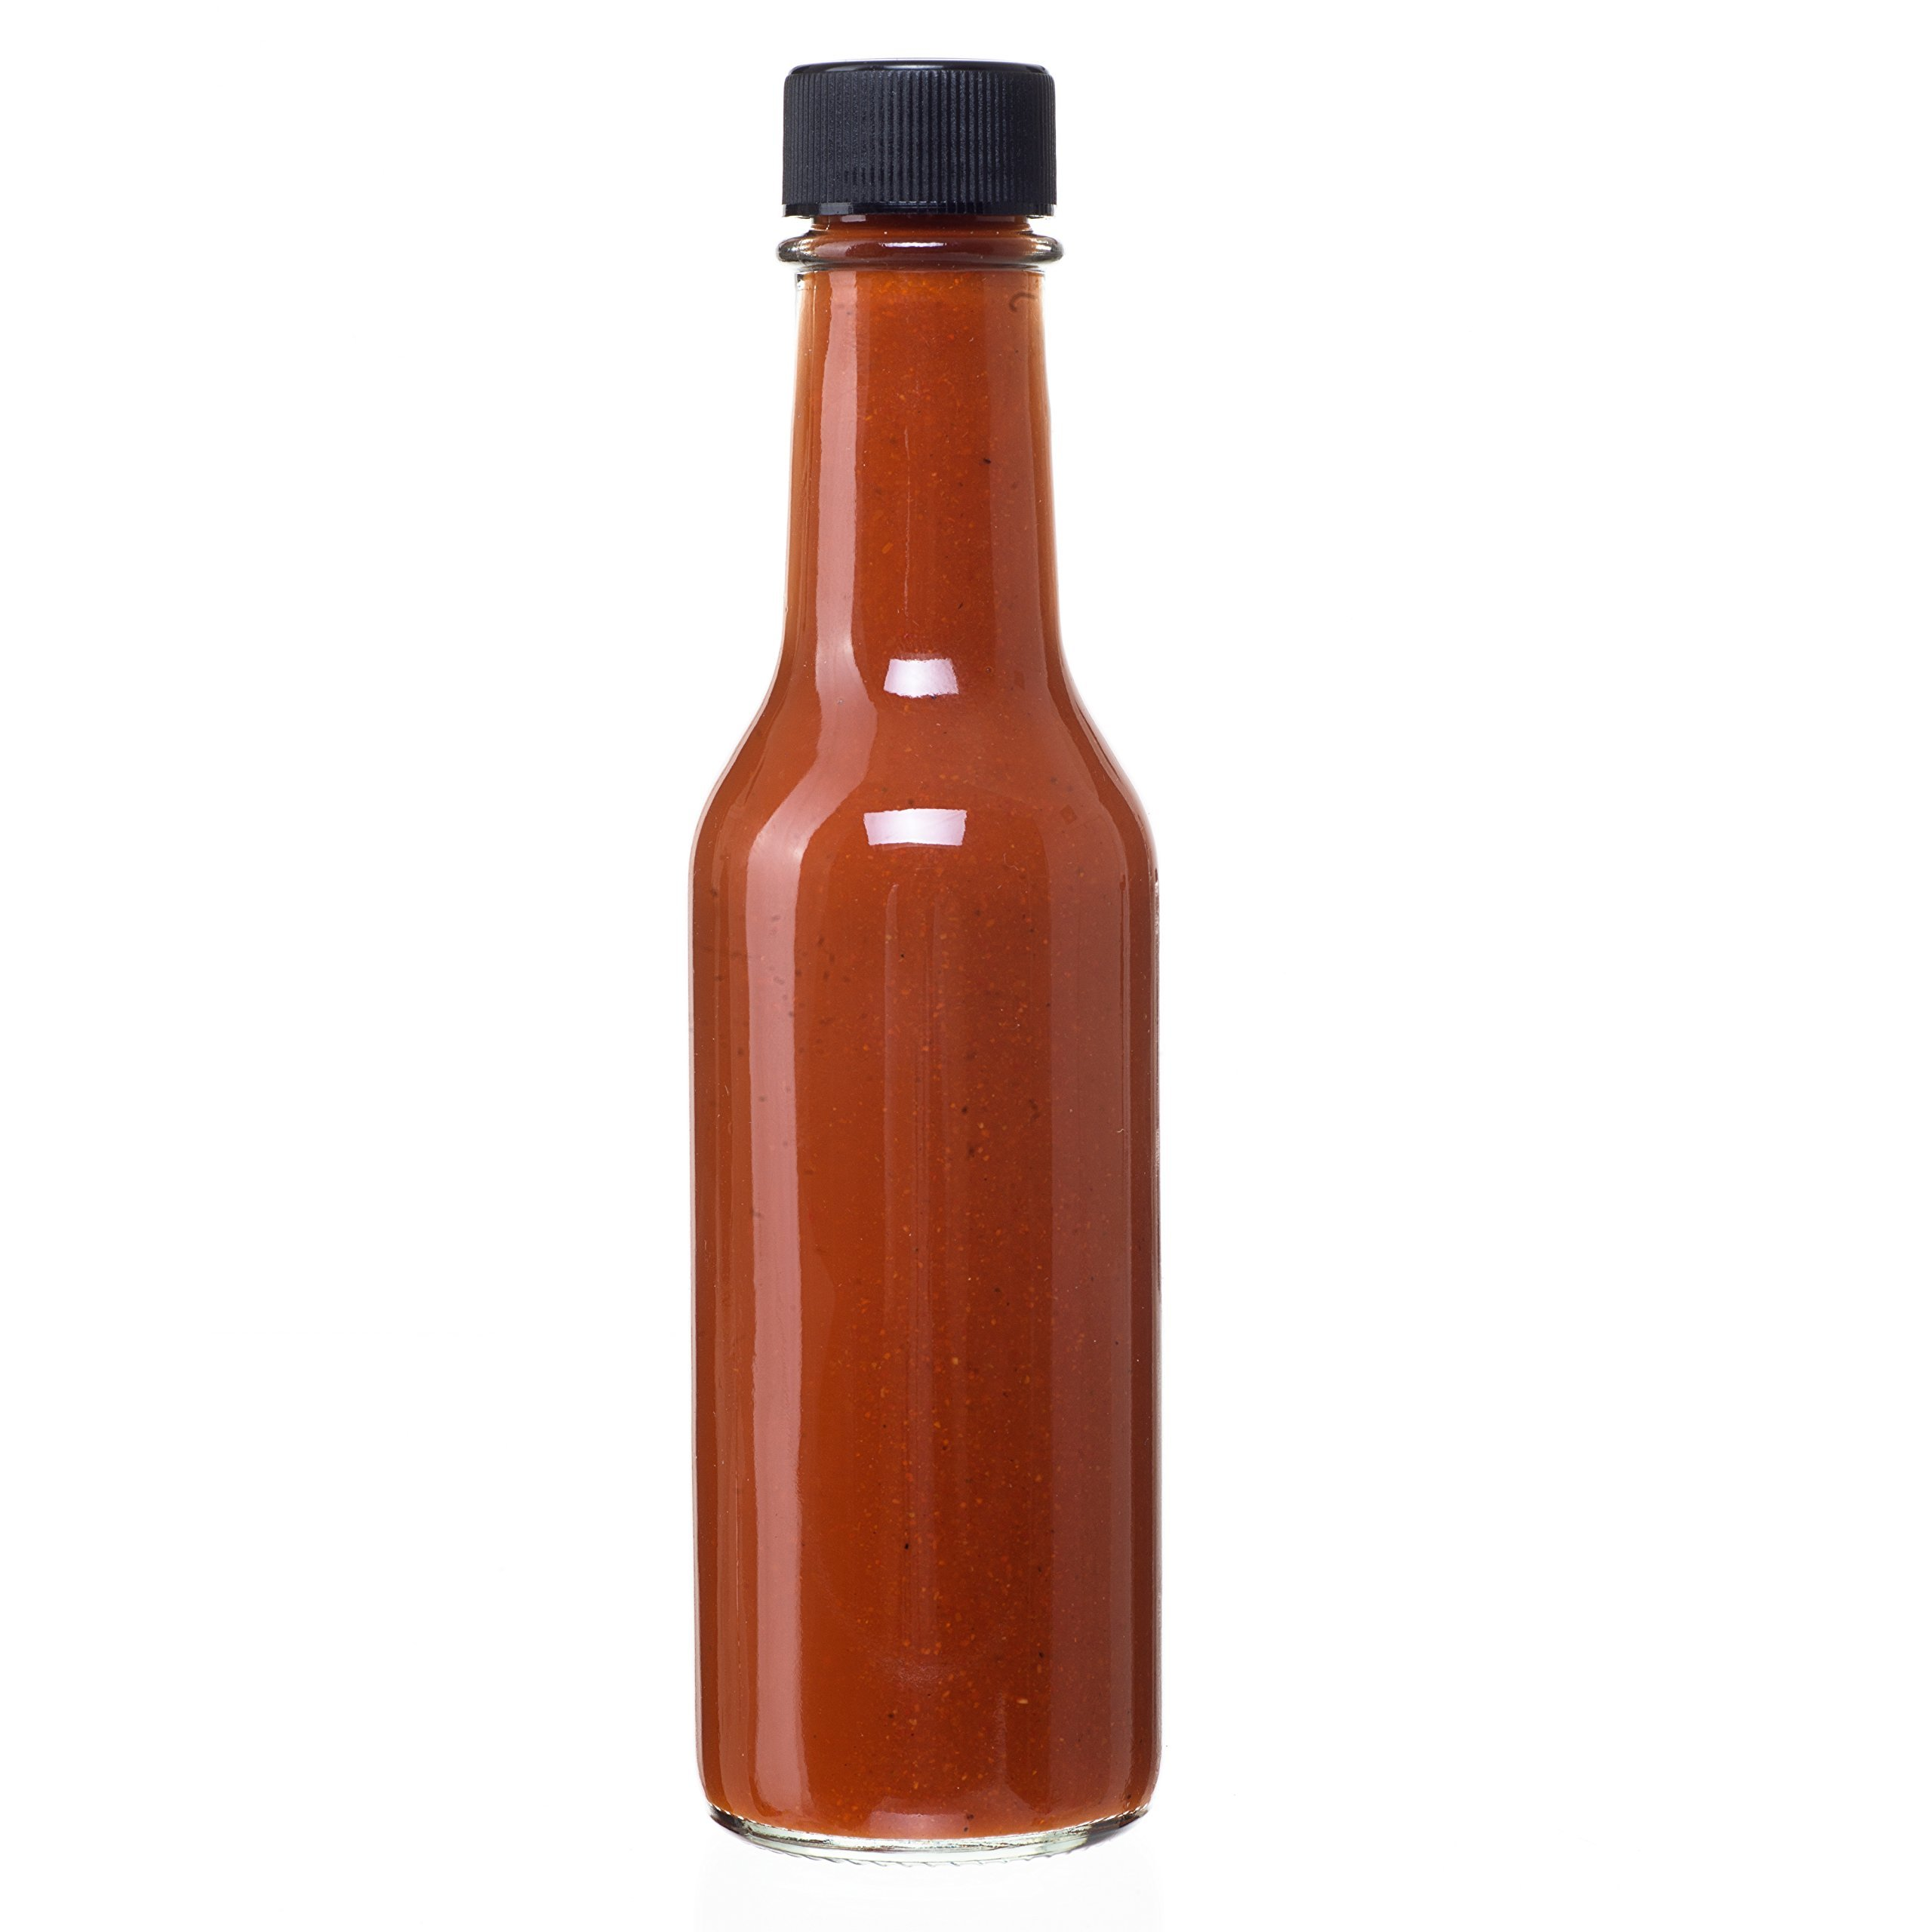 24 Pack - 5 Oz Empty Clear Glass Hot Sauce Bottles with Black Caps and Drip Dispensing Tops, By California Home Goods by California Home Goods (Image #2)